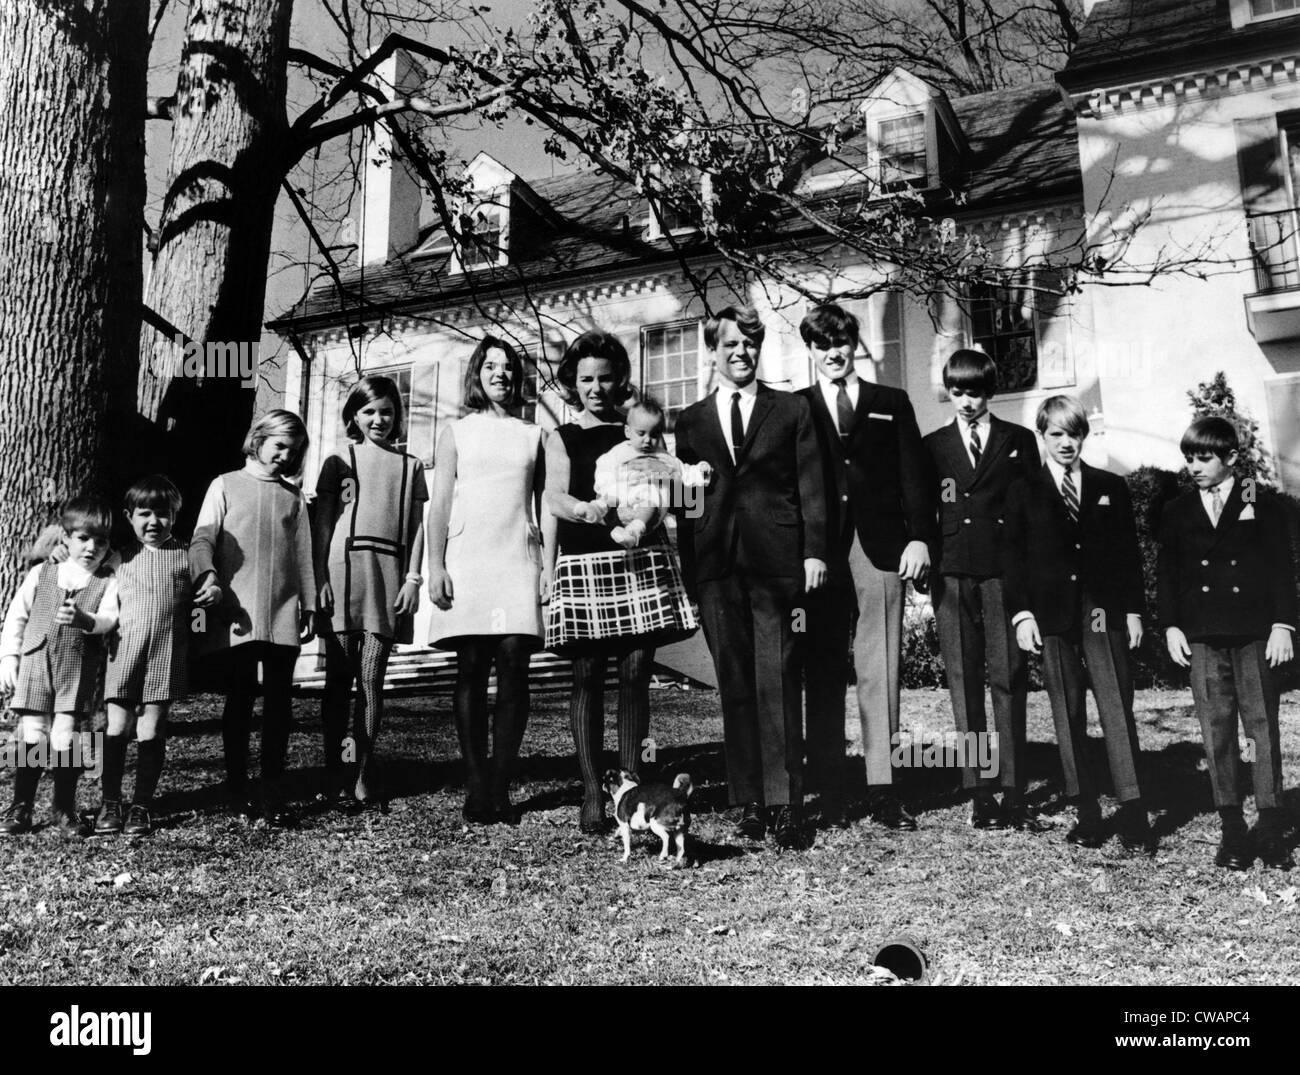 L-R: Matthew Maxwell Taylor Kennedy, Christopher George Kennedy, Mary Kerry Kennedy, Mary Courtney Kennedy, Kathleen - Stock Image